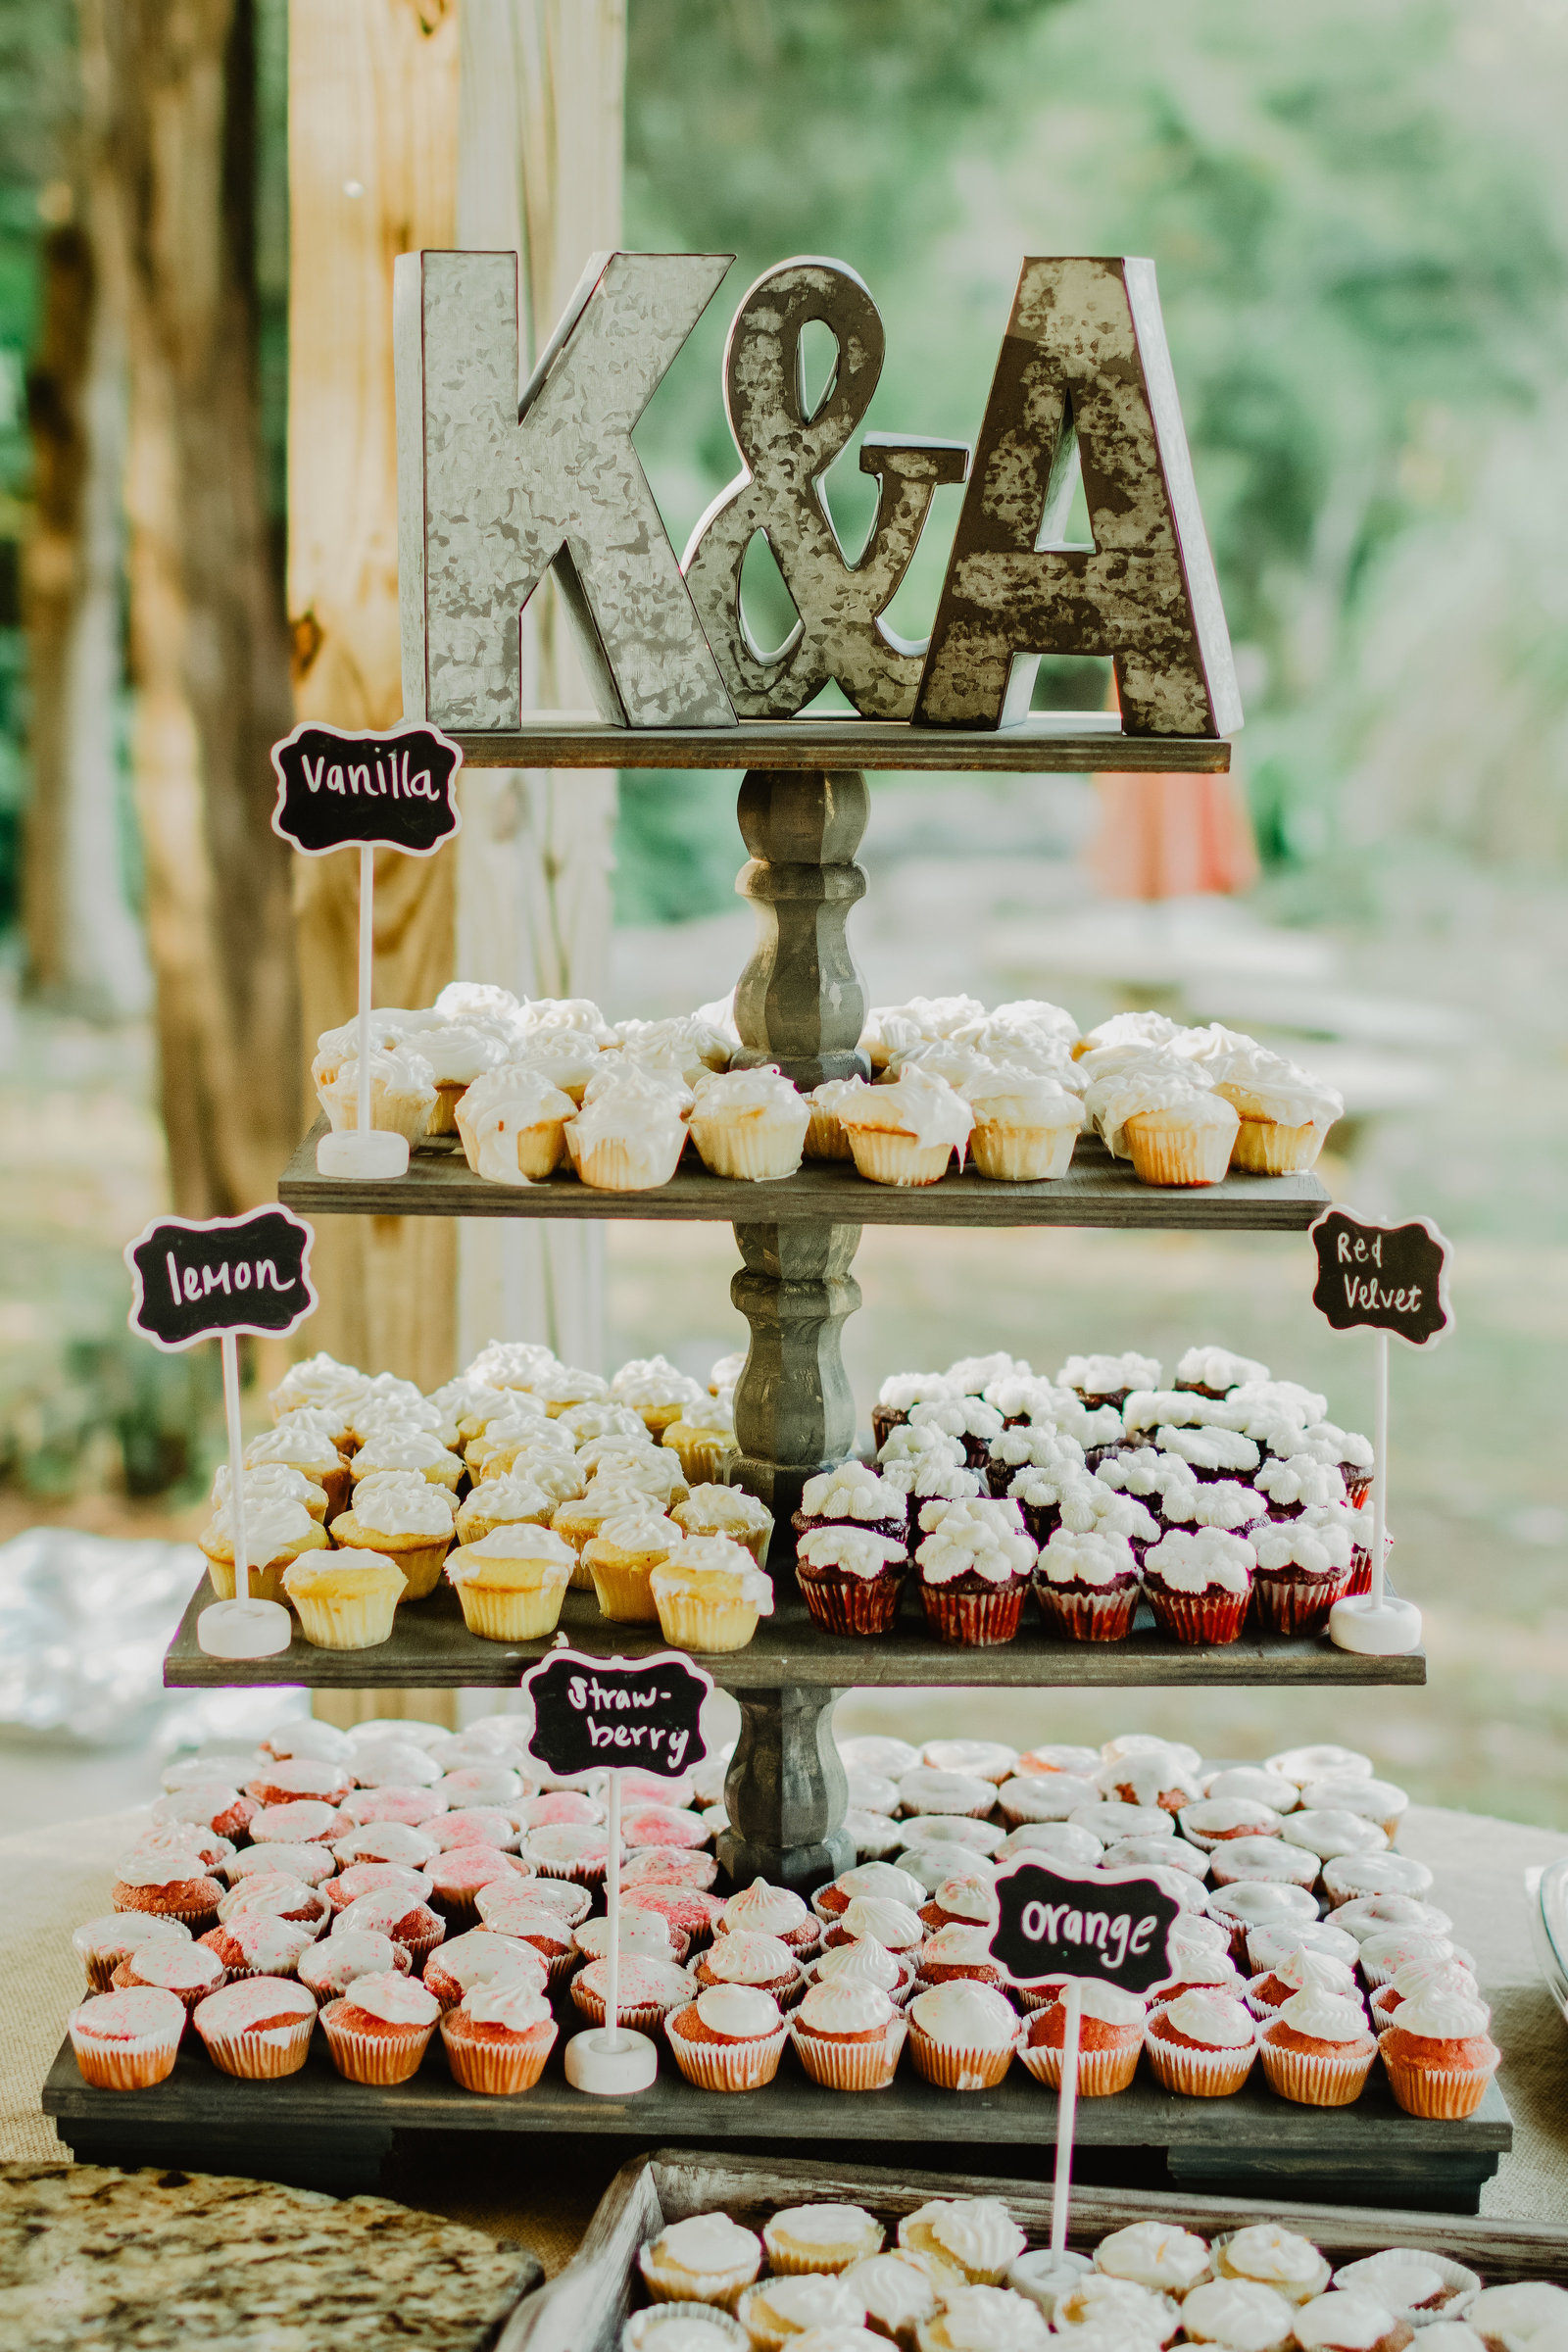 Instead of the traditional wedding cake how about mini cupcakes in assorted flavors